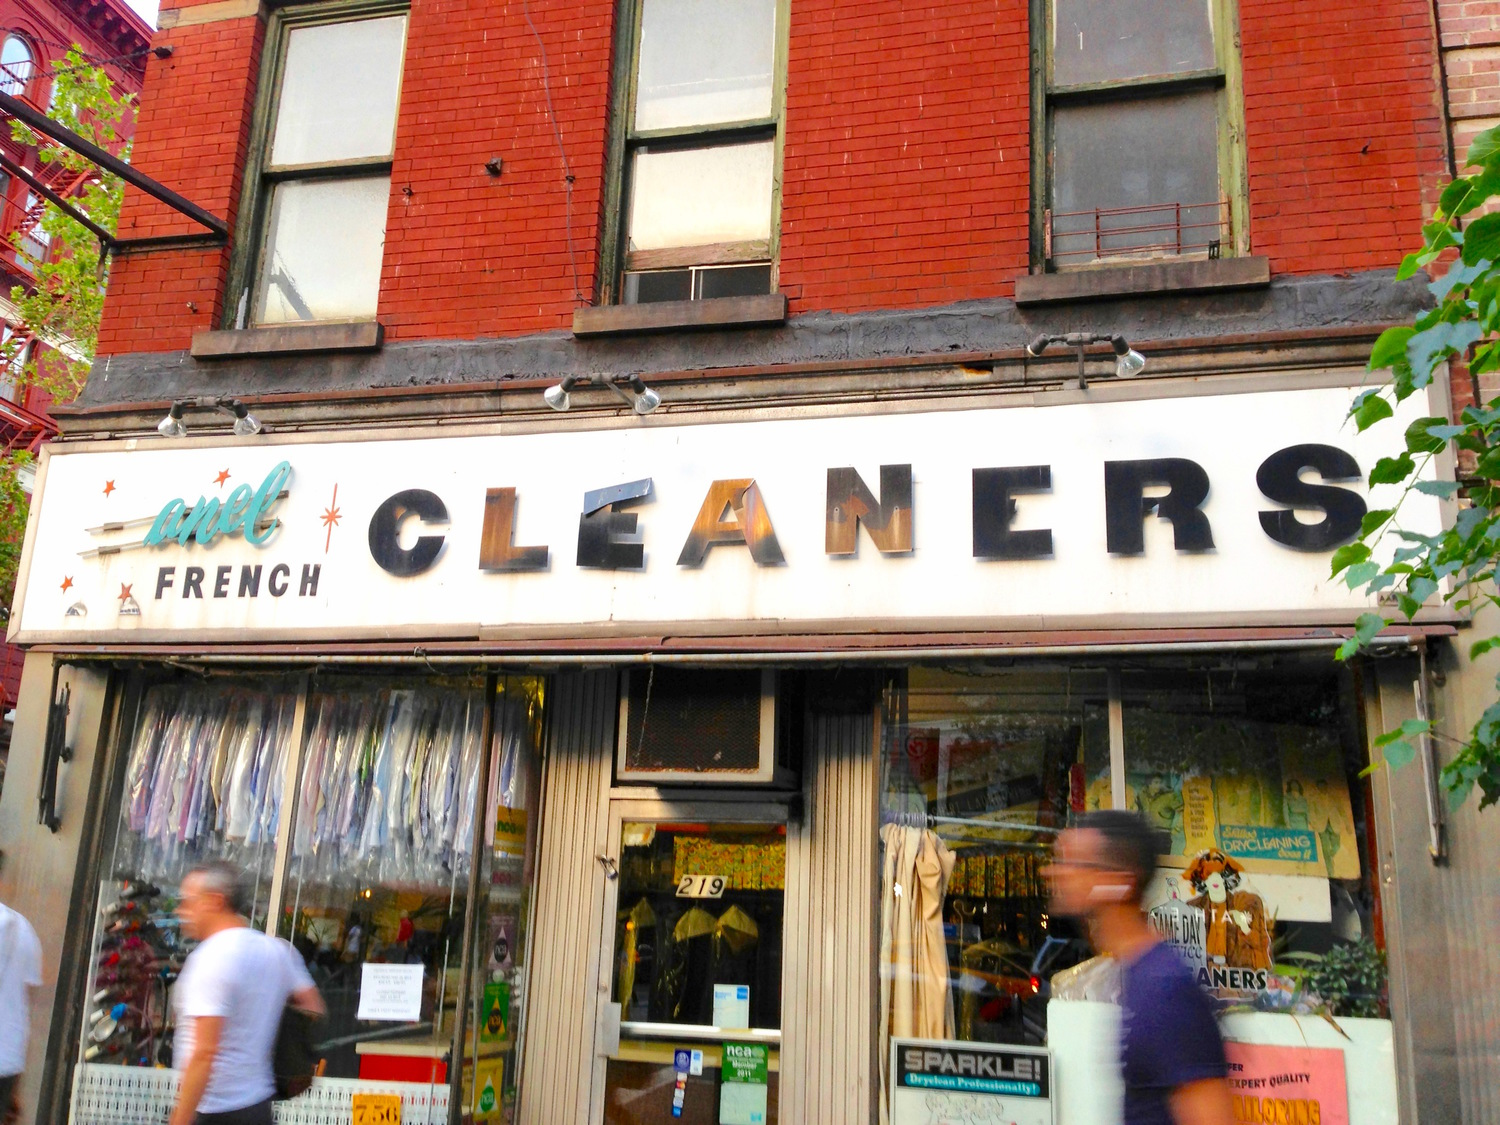 Anel French Cleaners